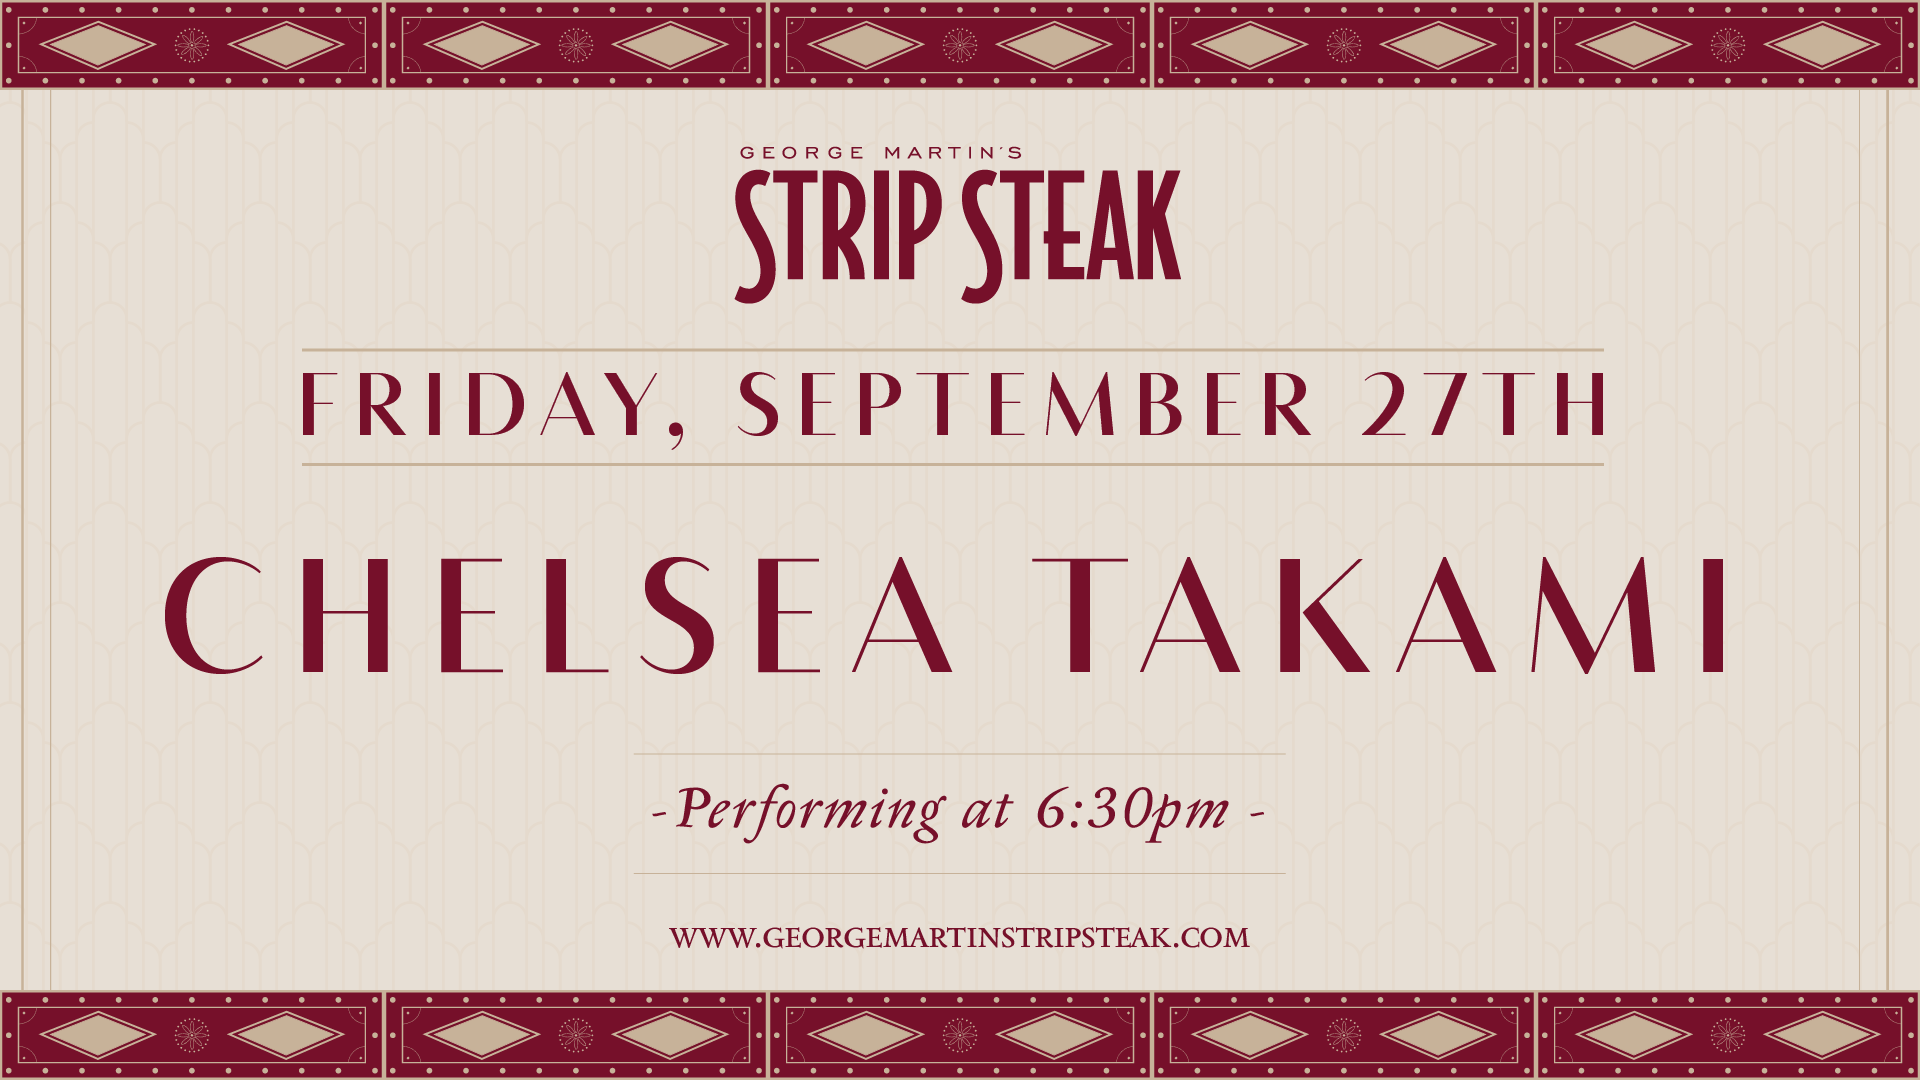 Flyer for Chelsea Takami on Friday, September 27th at 6:30pm